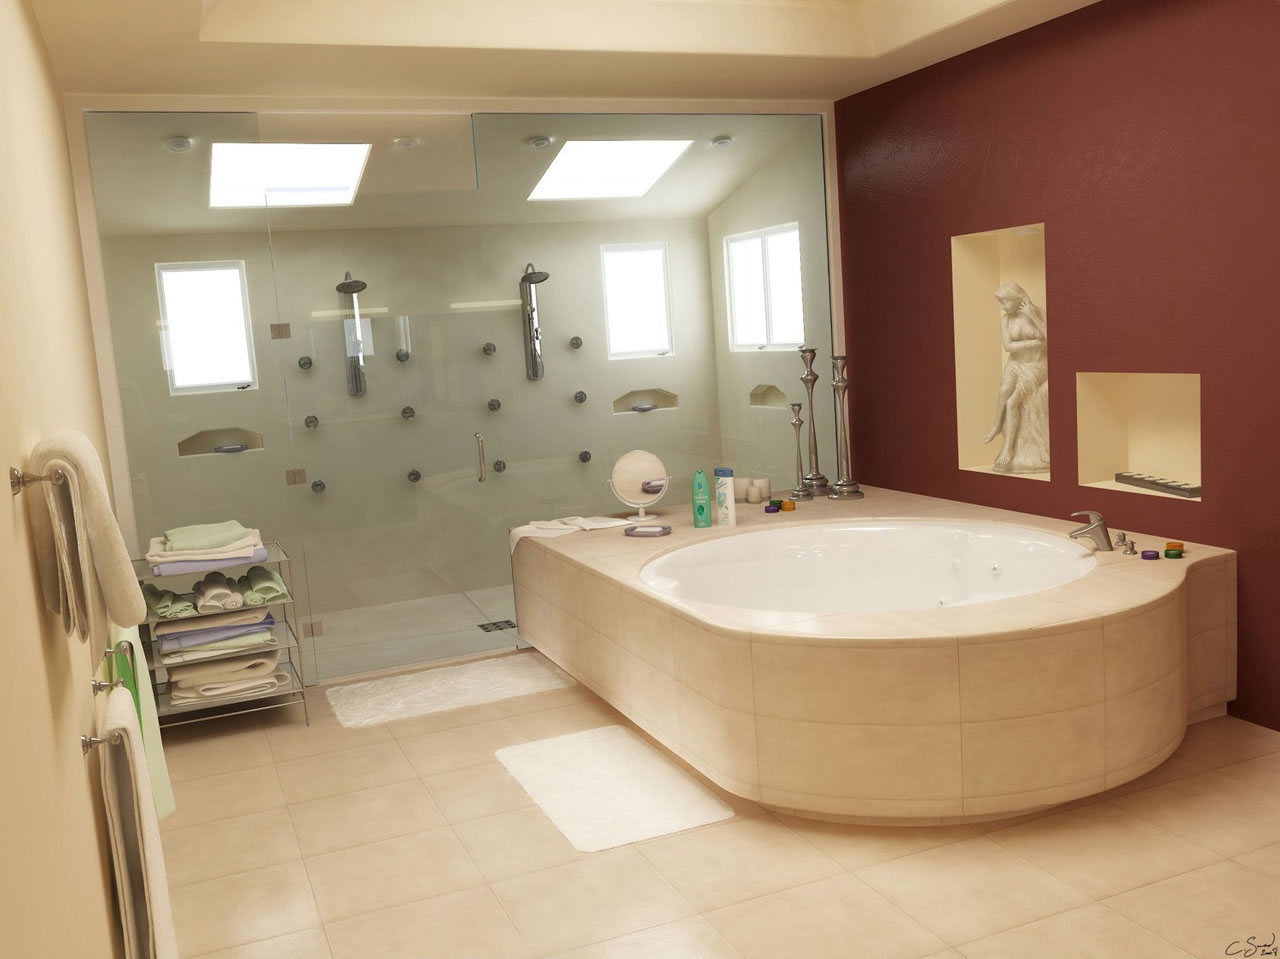 Bathroom Lighting High End high end light fixtures - home design ideas and pictures